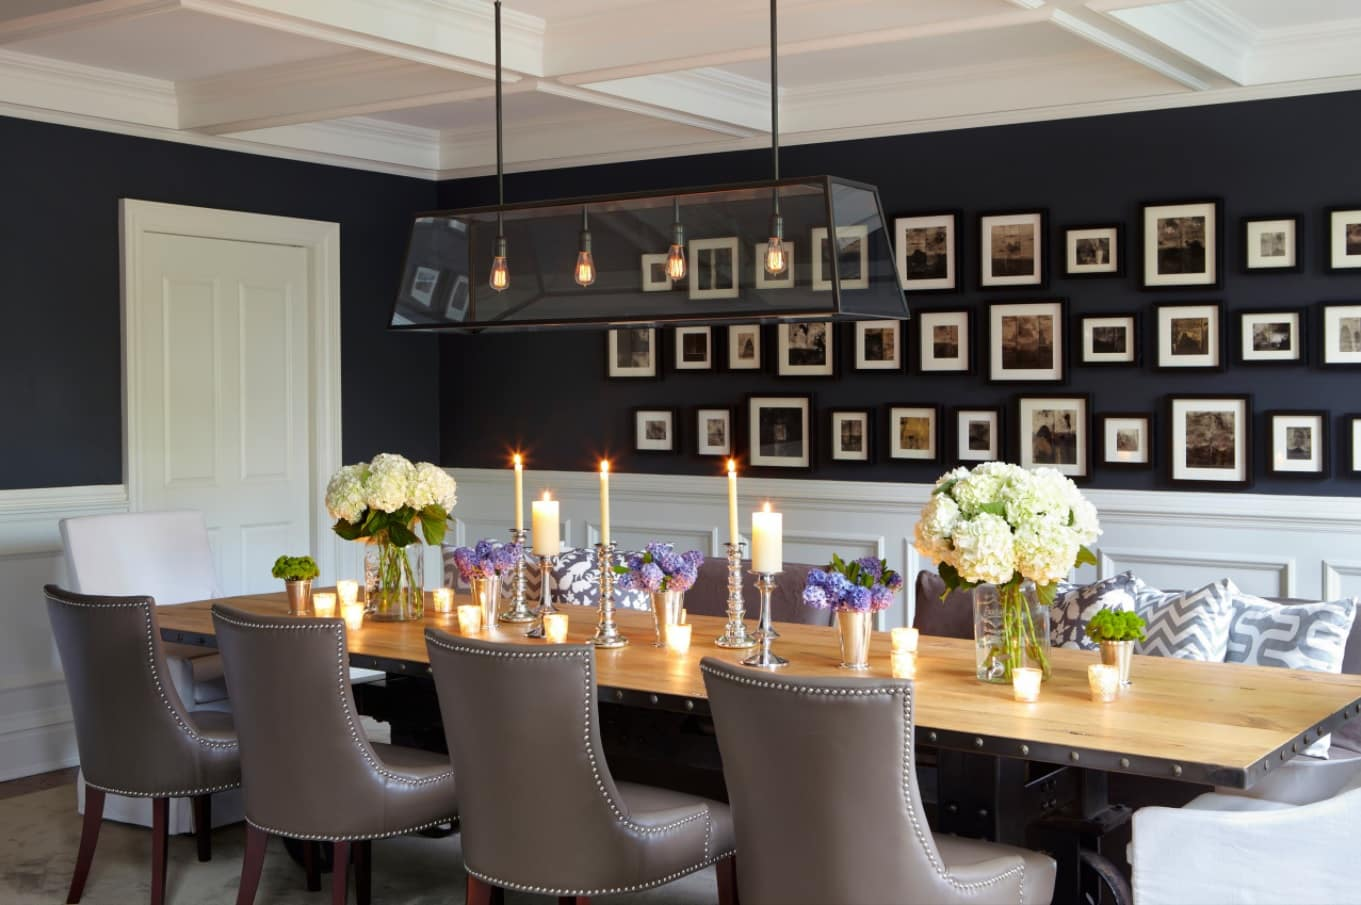 Modern Leather Dining Chairs to Complement the Interior. Grey noble riveted chairs in the space with black walls decorated with photos